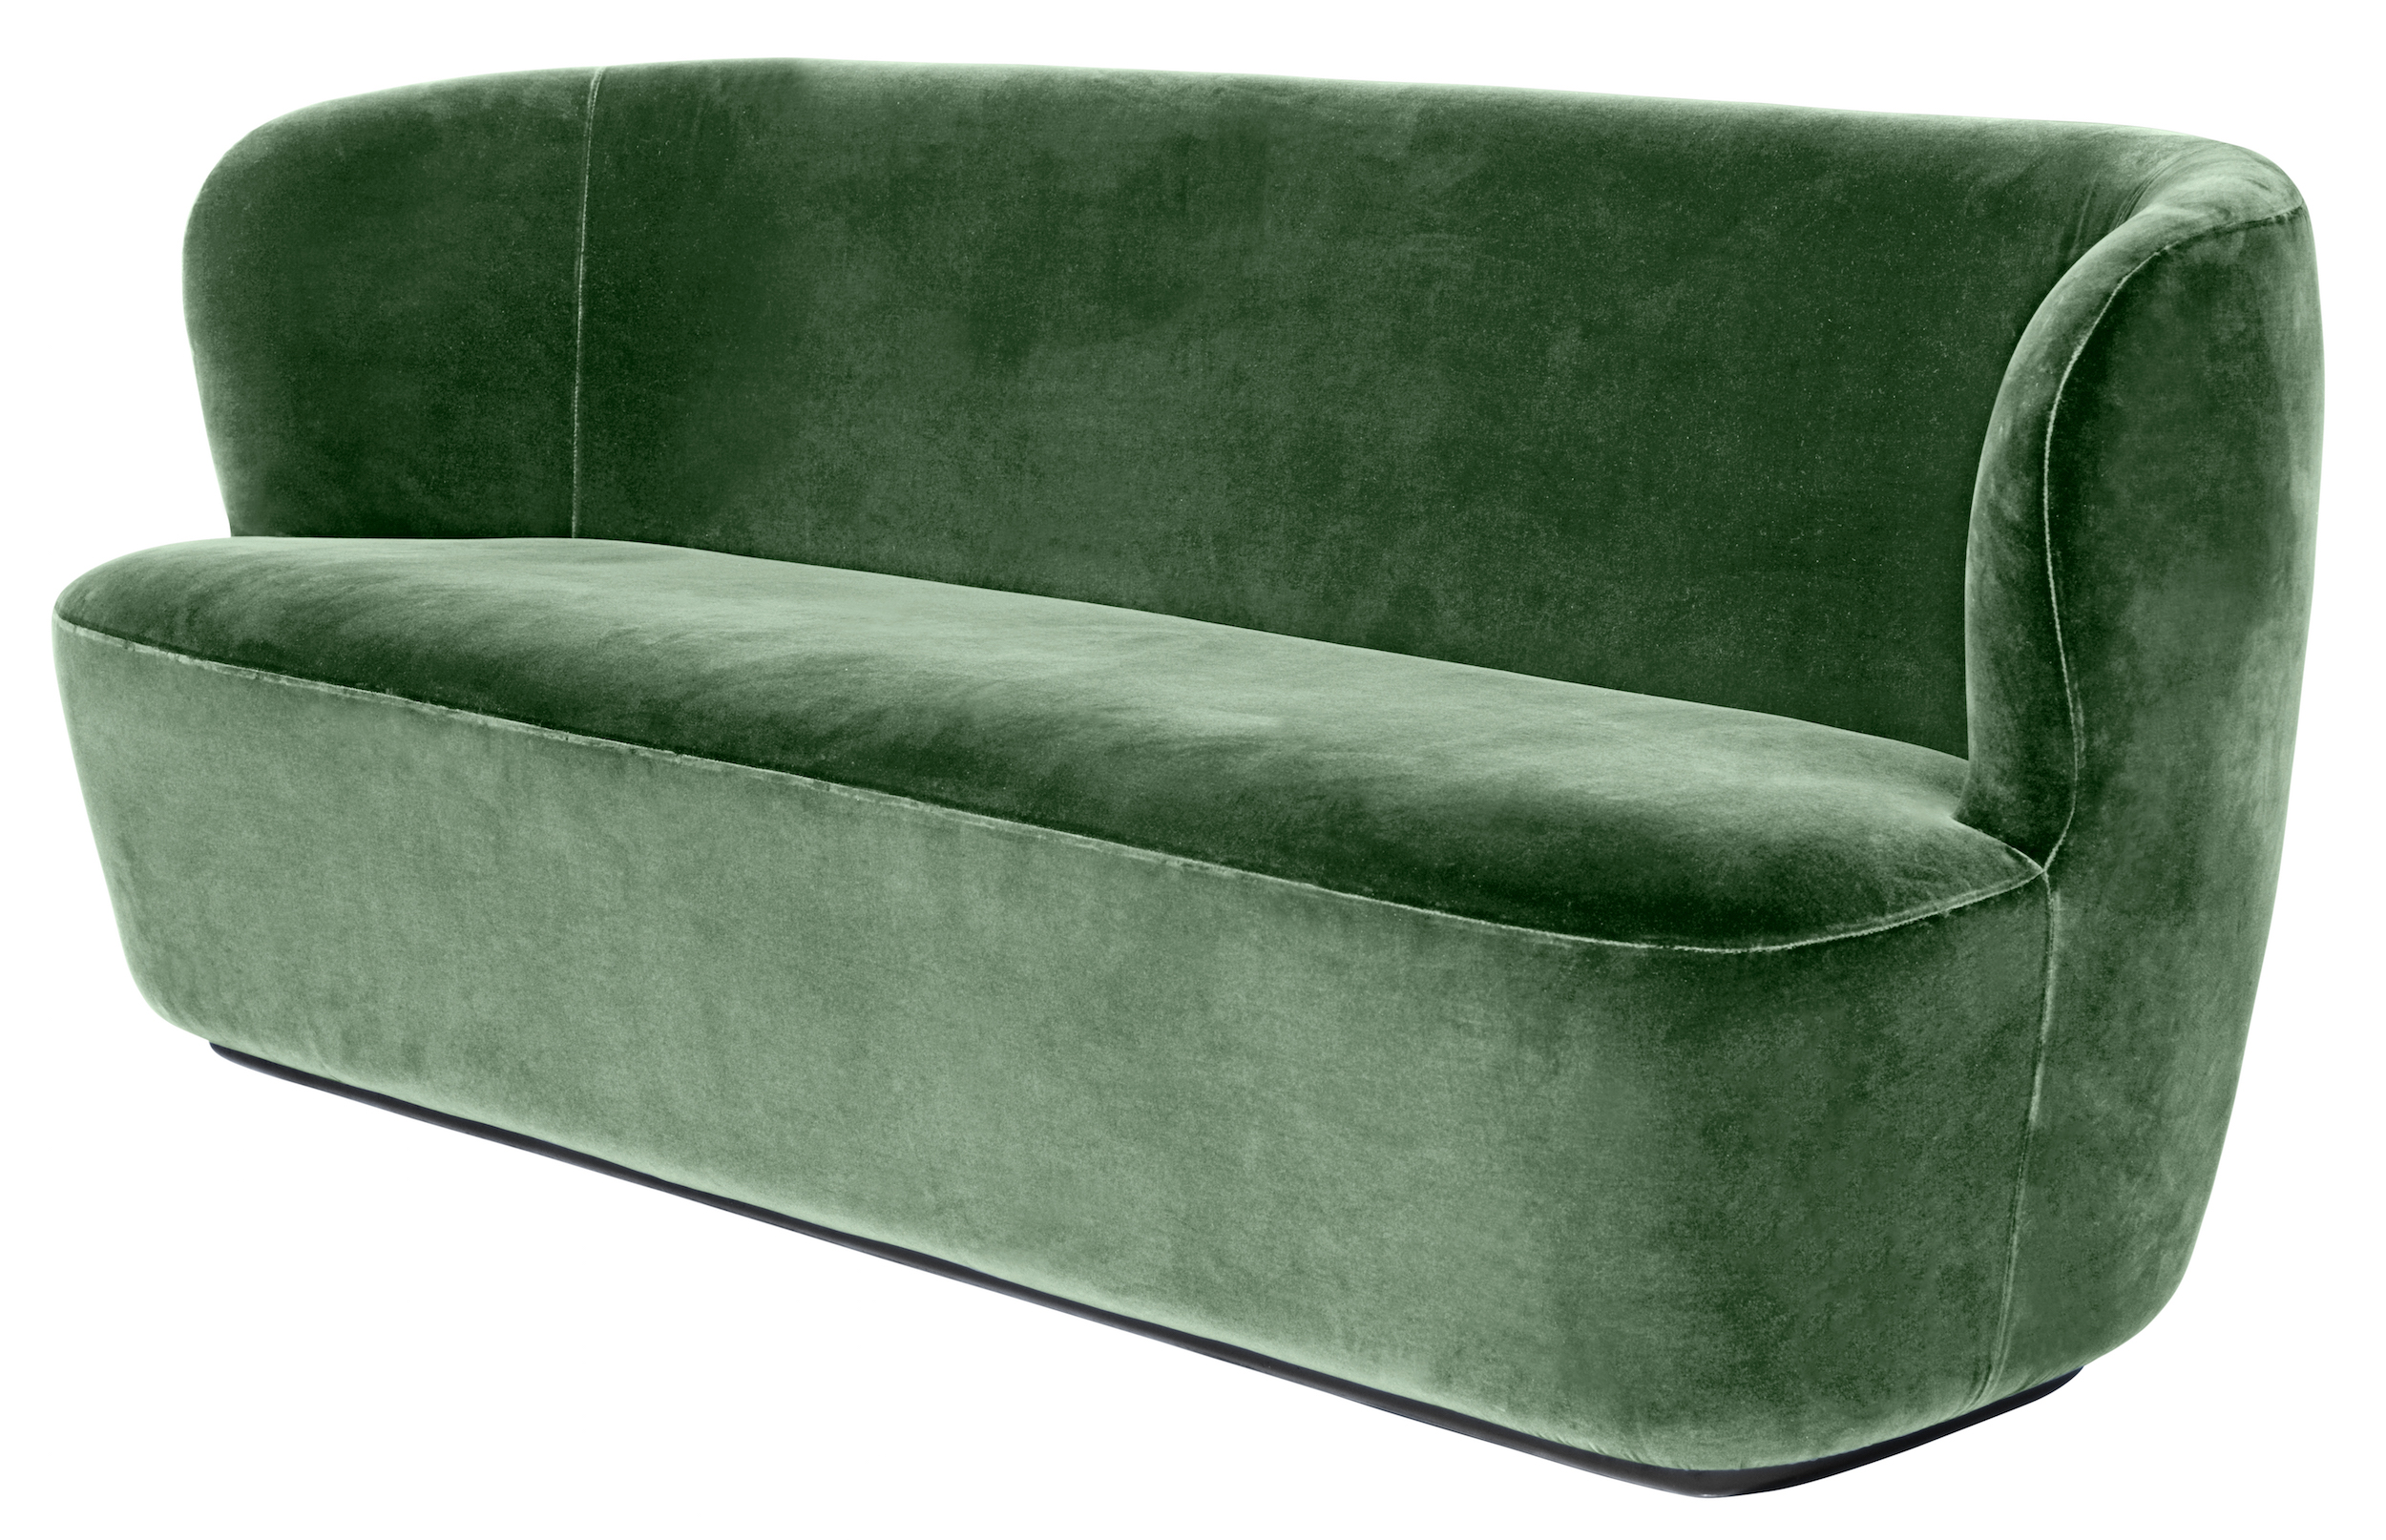 Gubi STAY Sofas amp Lounge Chairs Design Space Copenhagen